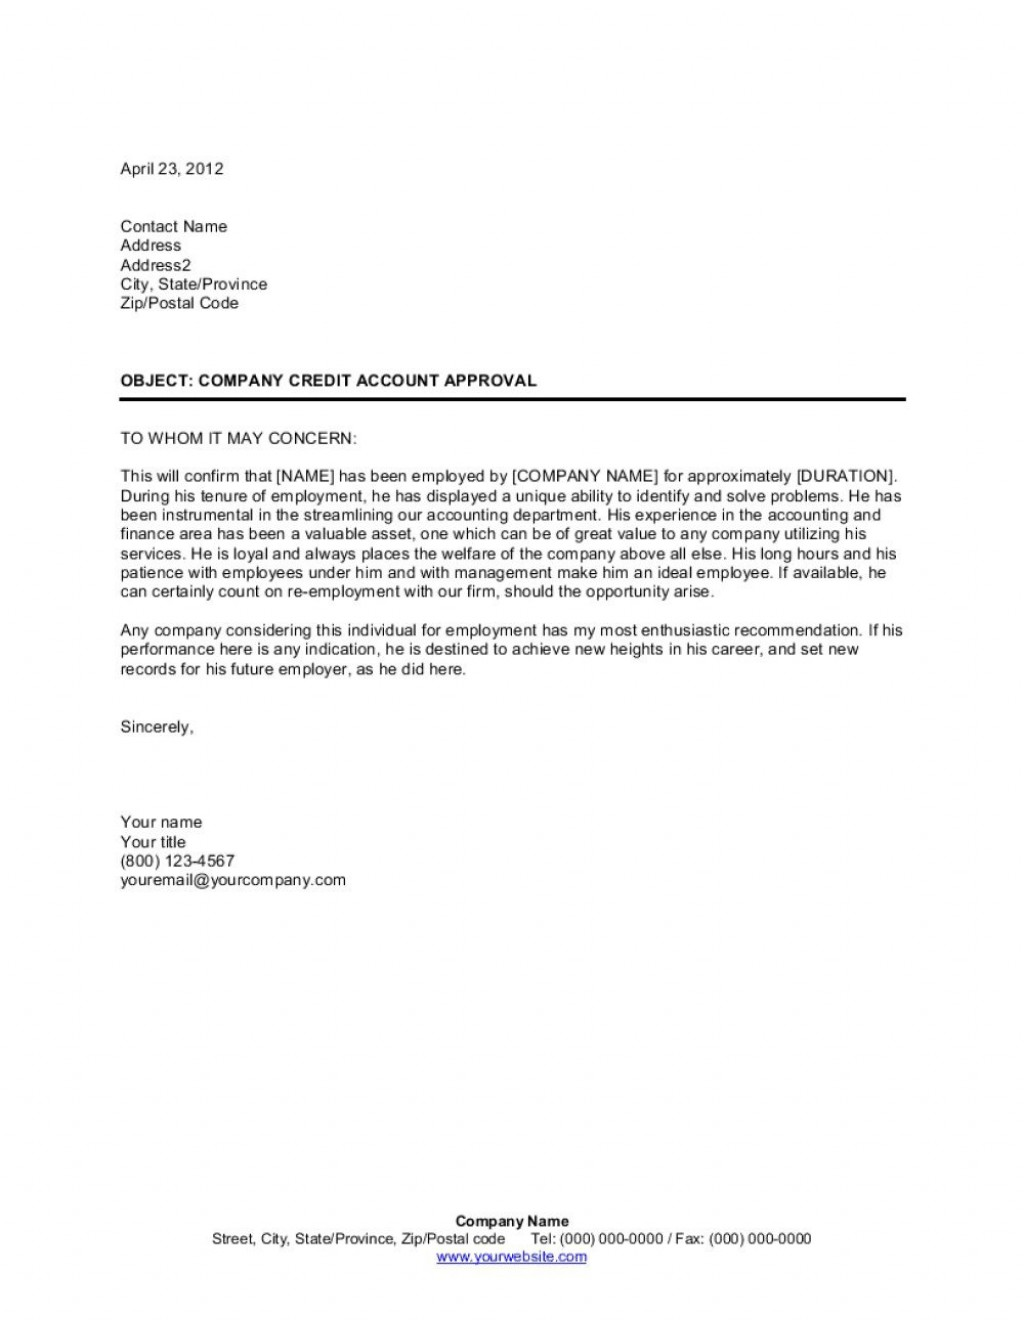 009 Archaicawful Letter Of Recomendation Template High Definition  Reference For Employment Sample Recommendation Teacher Student From EmployerLarge